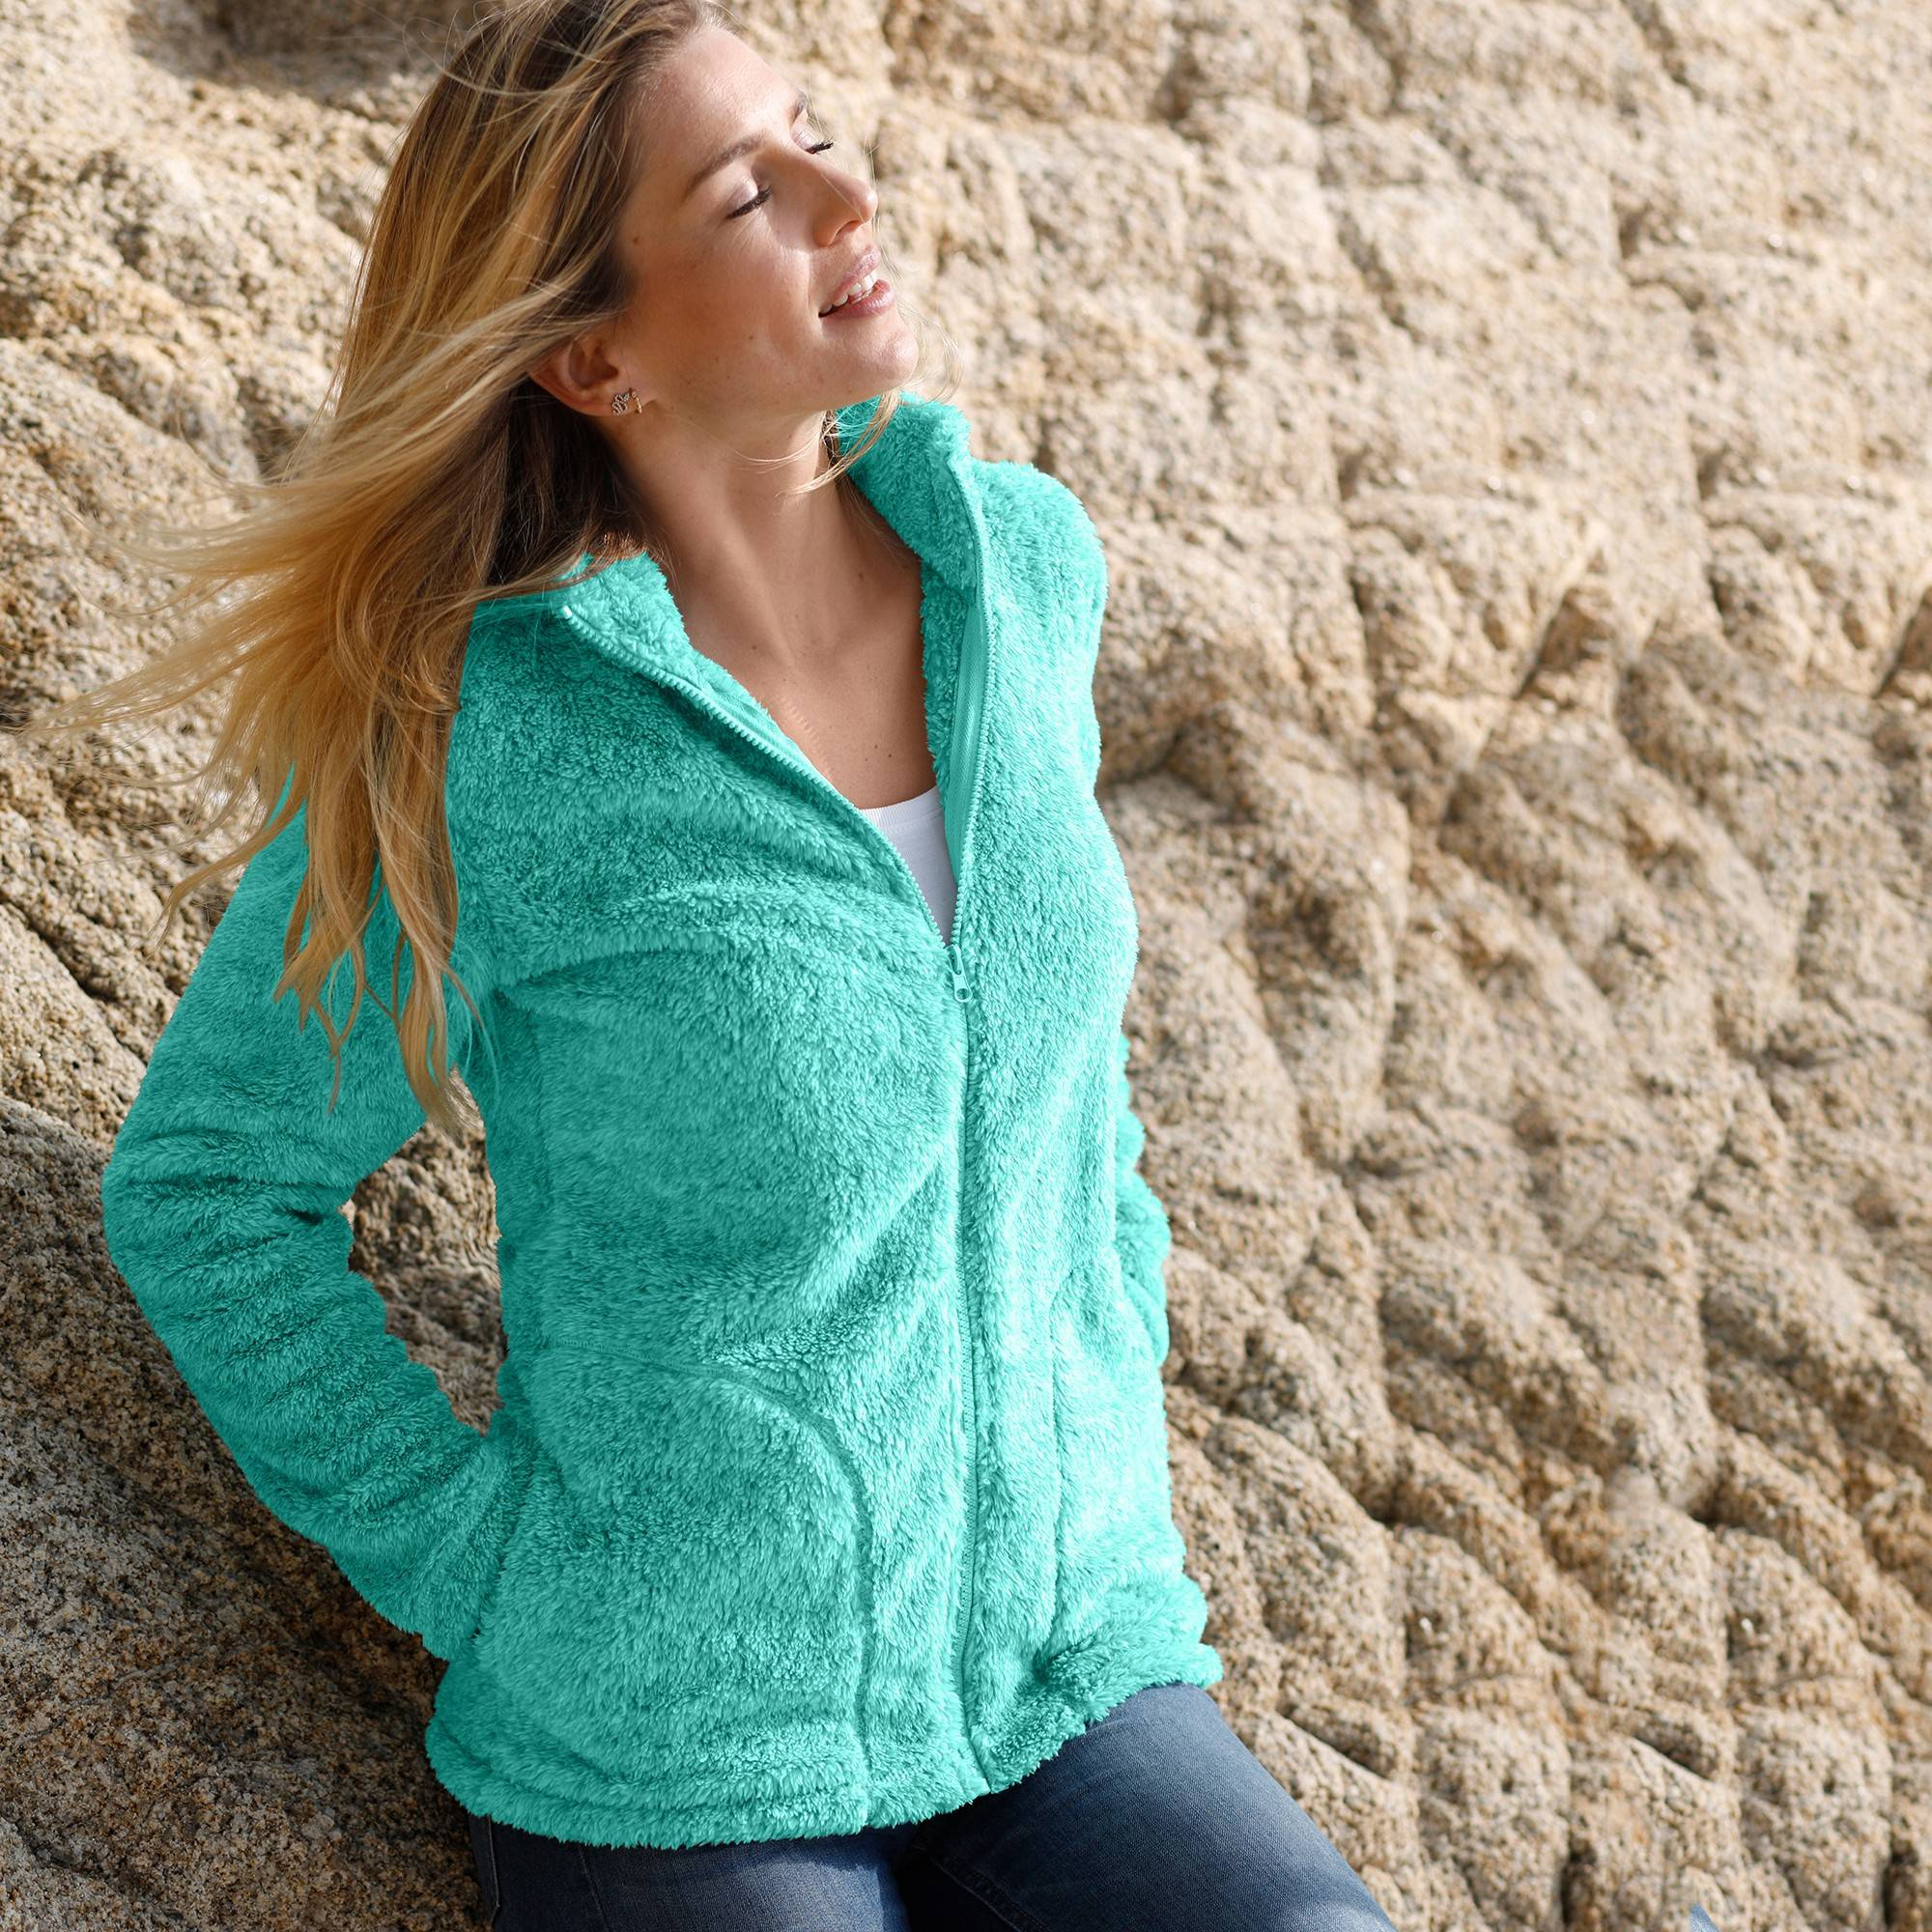 Casual Collection Veste maille peluche - Turquoise - Taille : 52 - Blancheporte